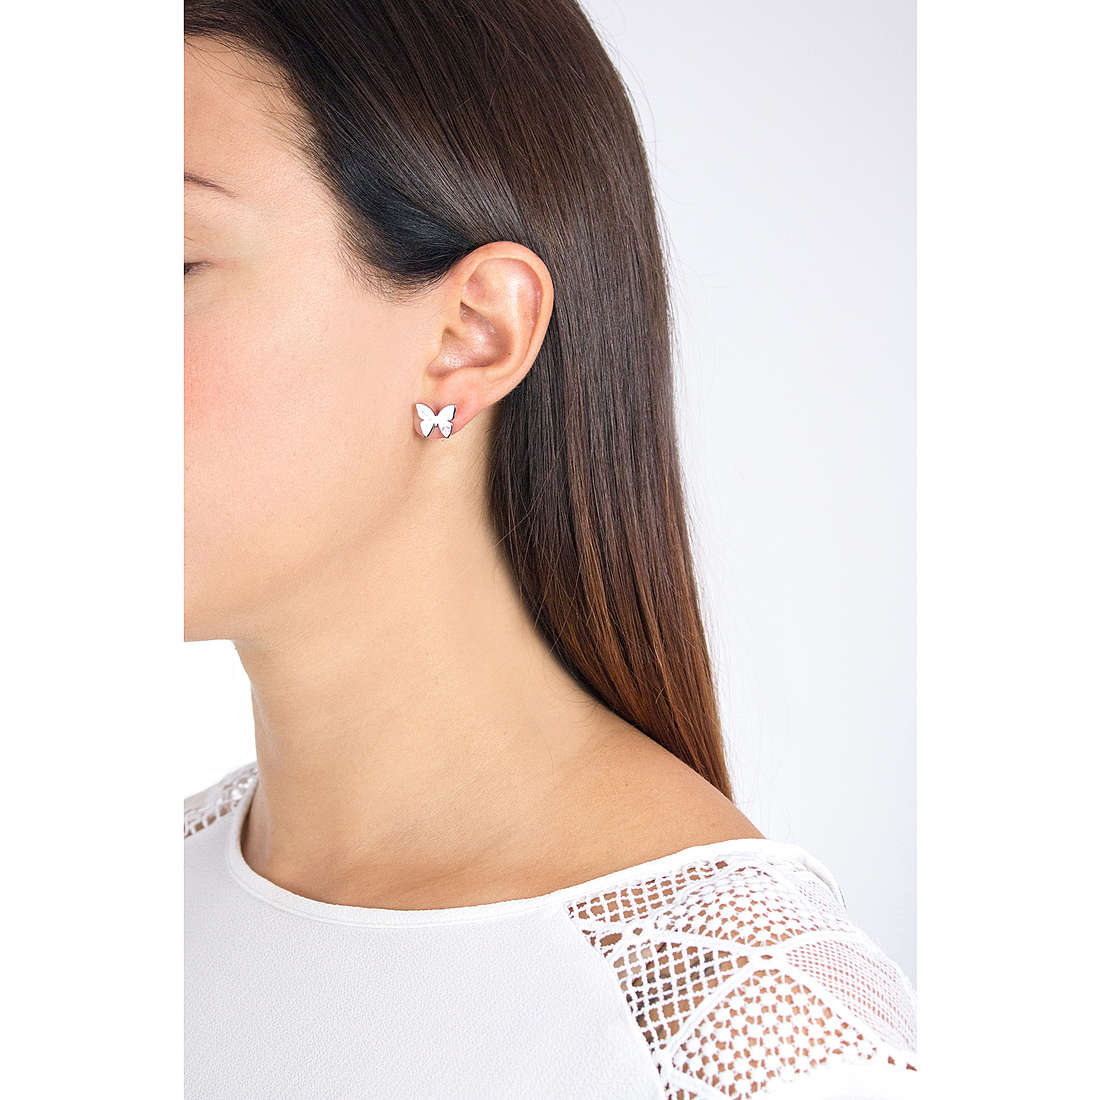 Nomination earrings Butterfly woman 021308/002 indosso